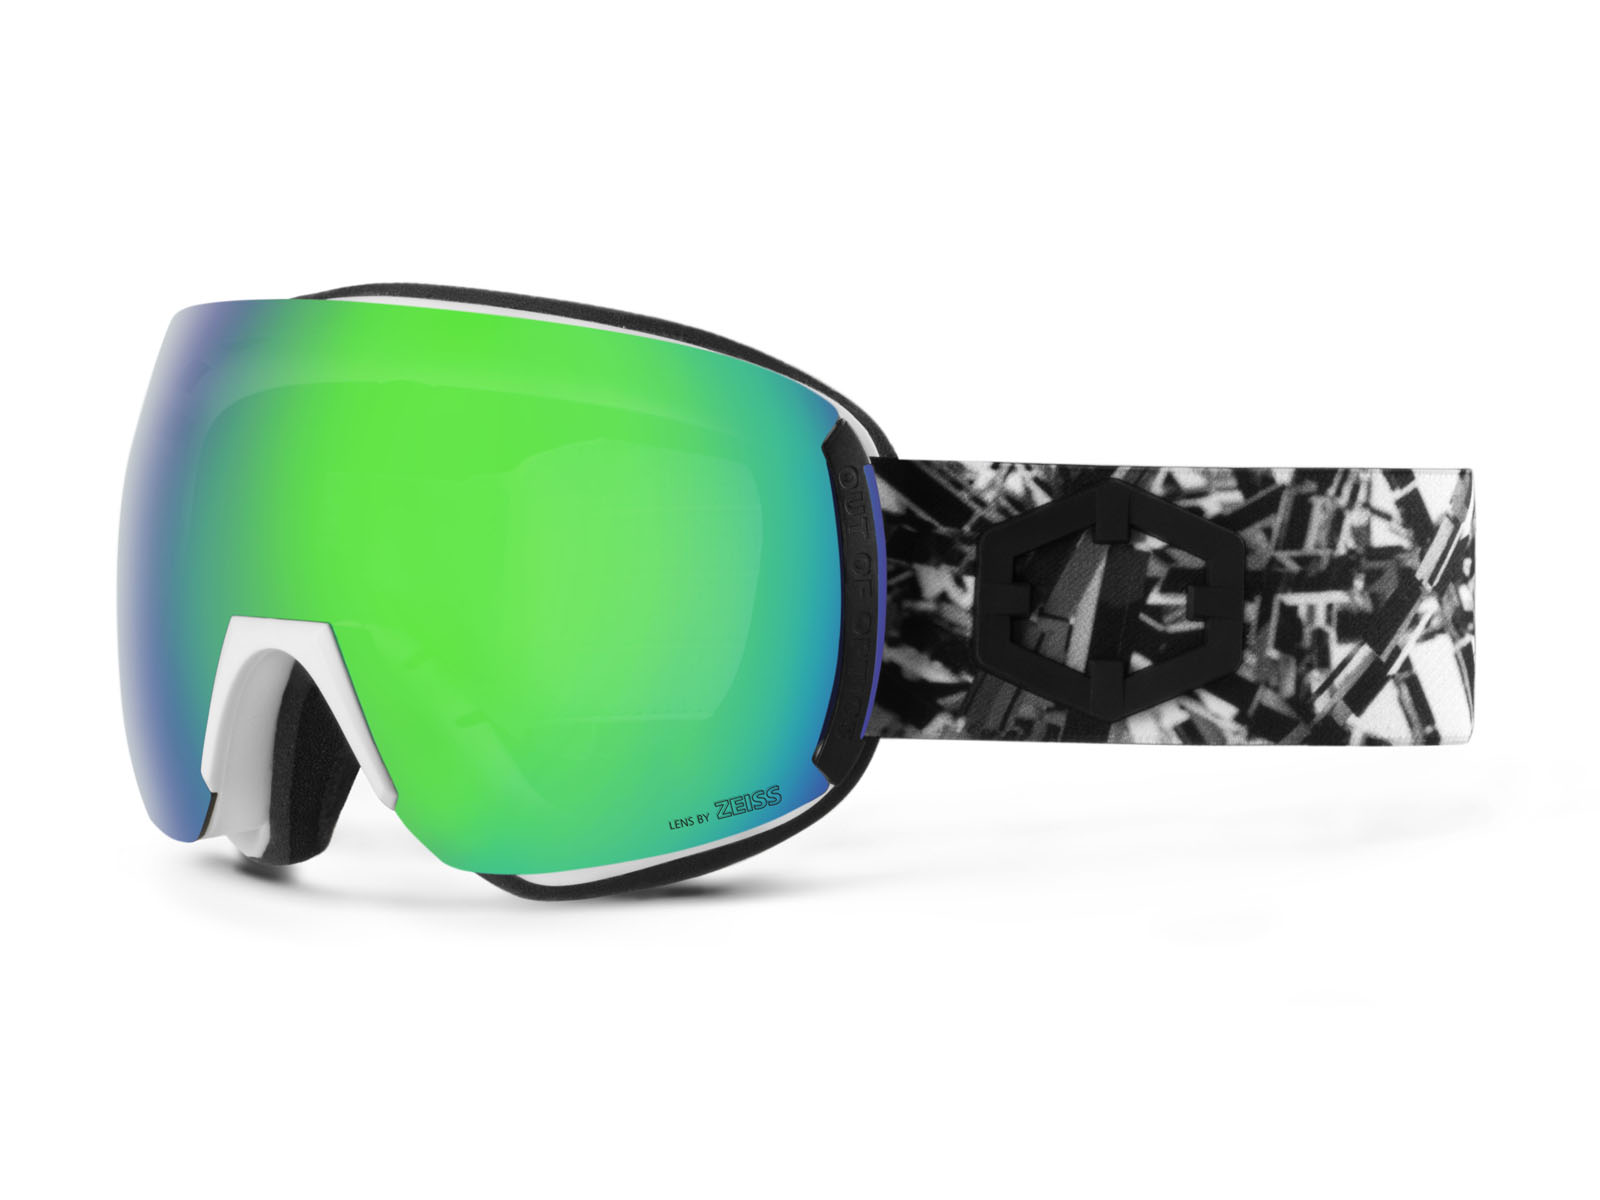 EARTH MATRIX GREEN MCI GOGGLE